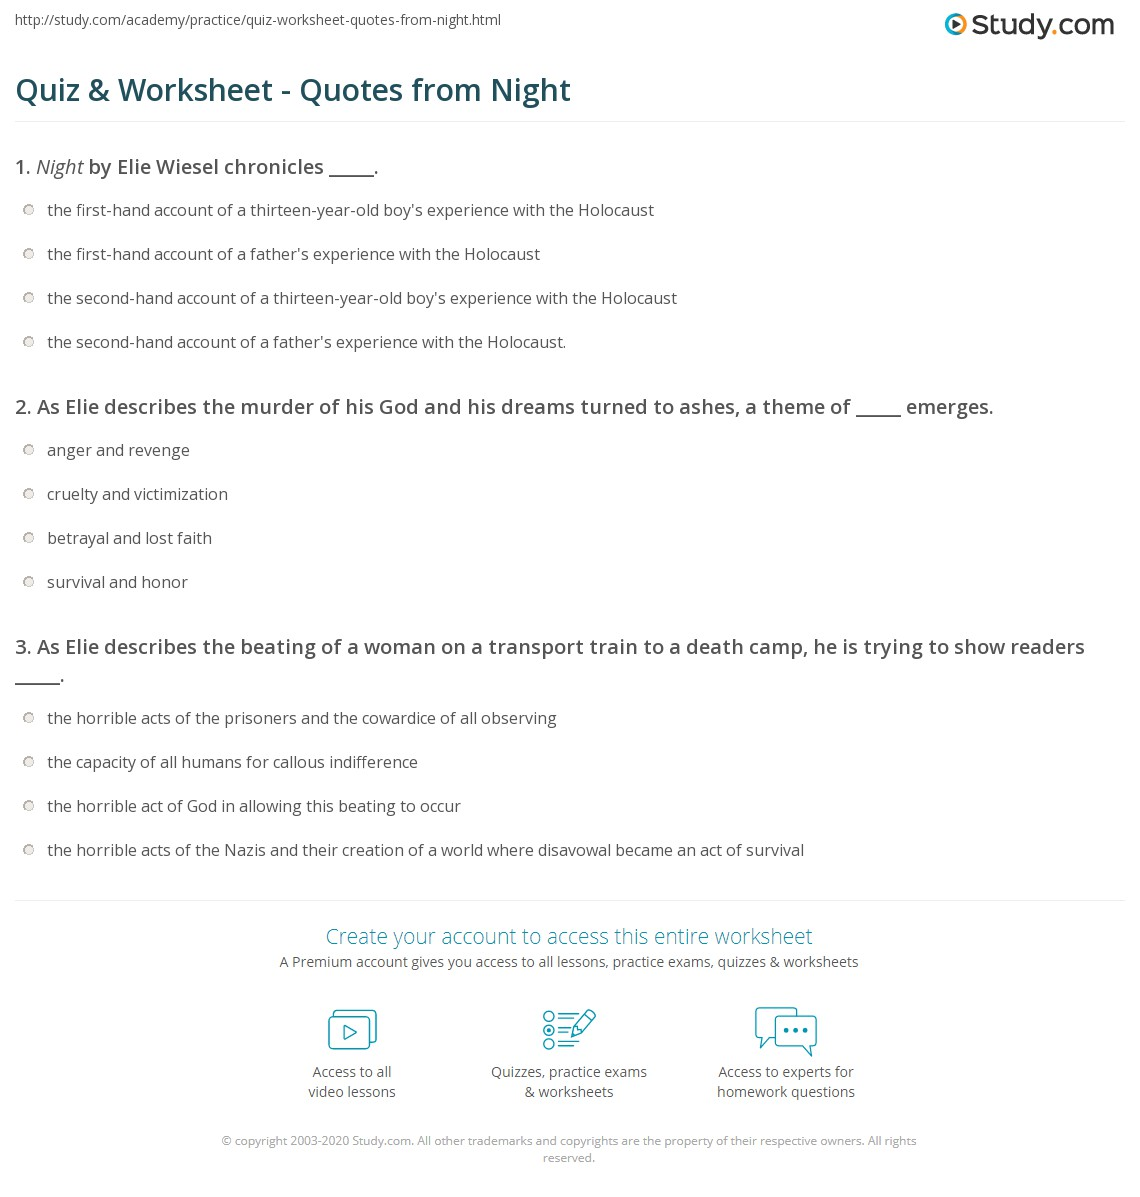 Night By Elie Wiesel Quotes Amazing Quiz & Worksheet  Quotes From Night  Study